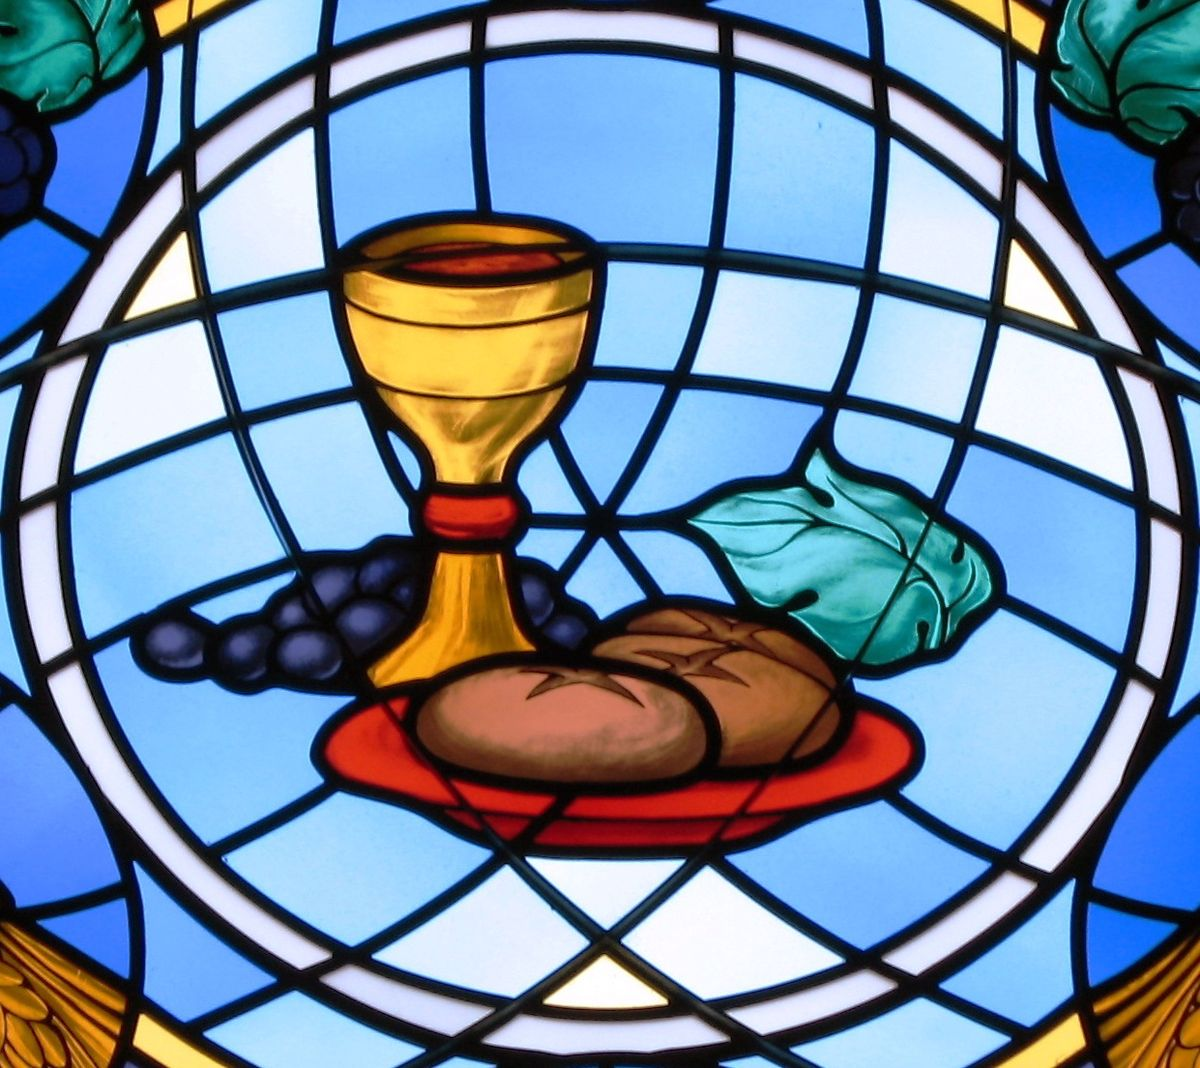 eucharist - wikipedia